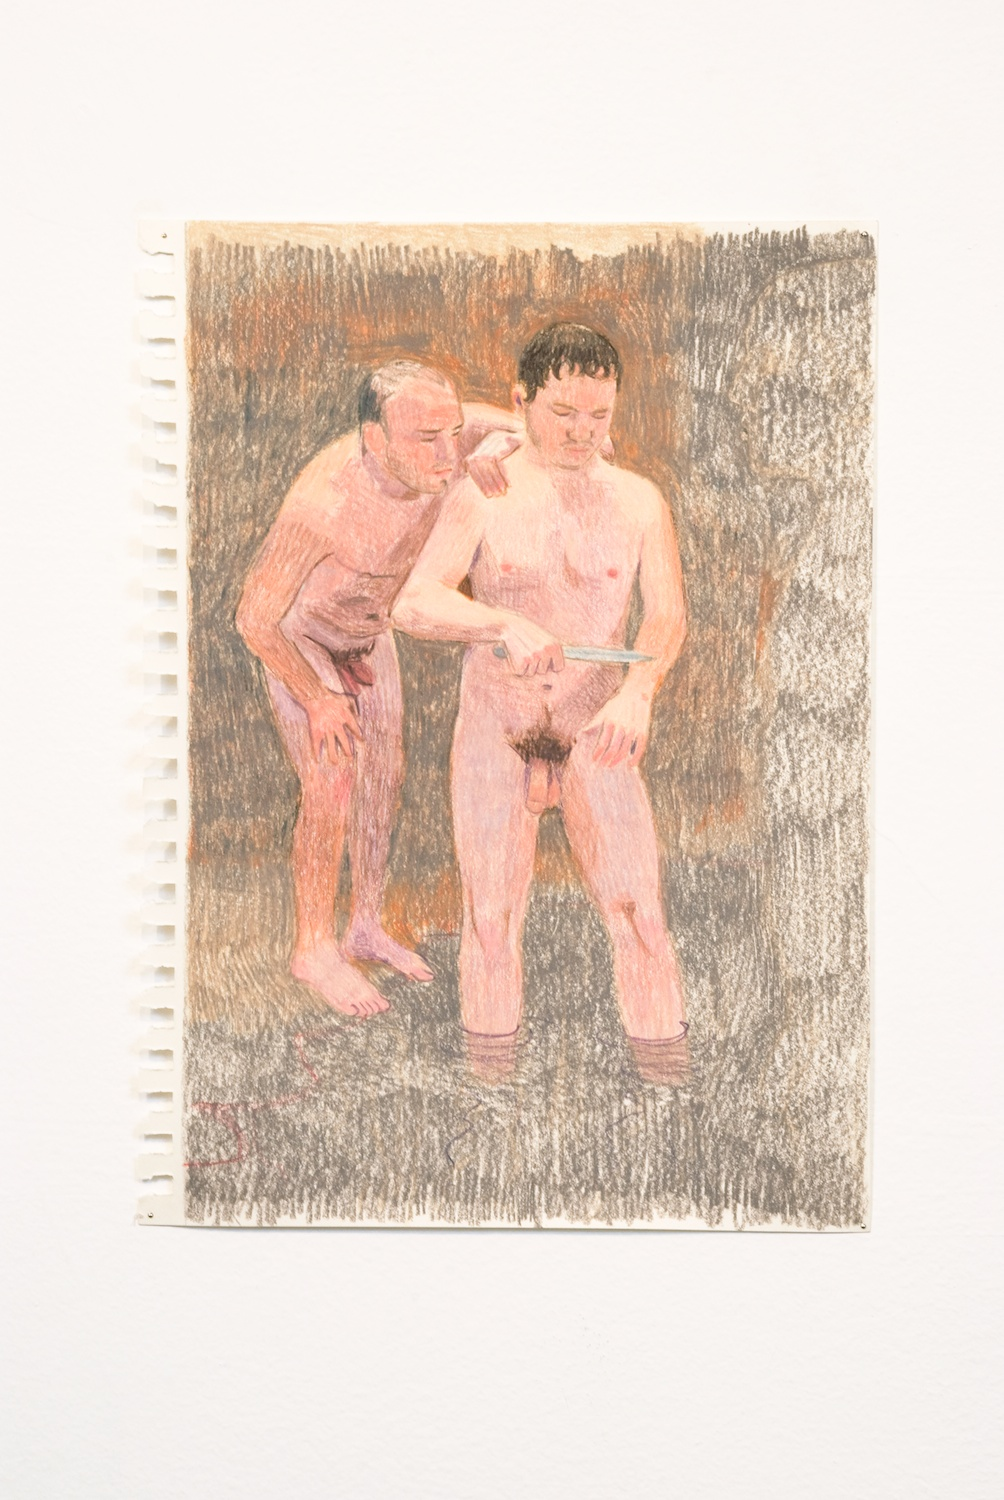 Elijah Burgher  The blood-letting 2  2010 Colored pencil on paper 8h x 12w in EB008